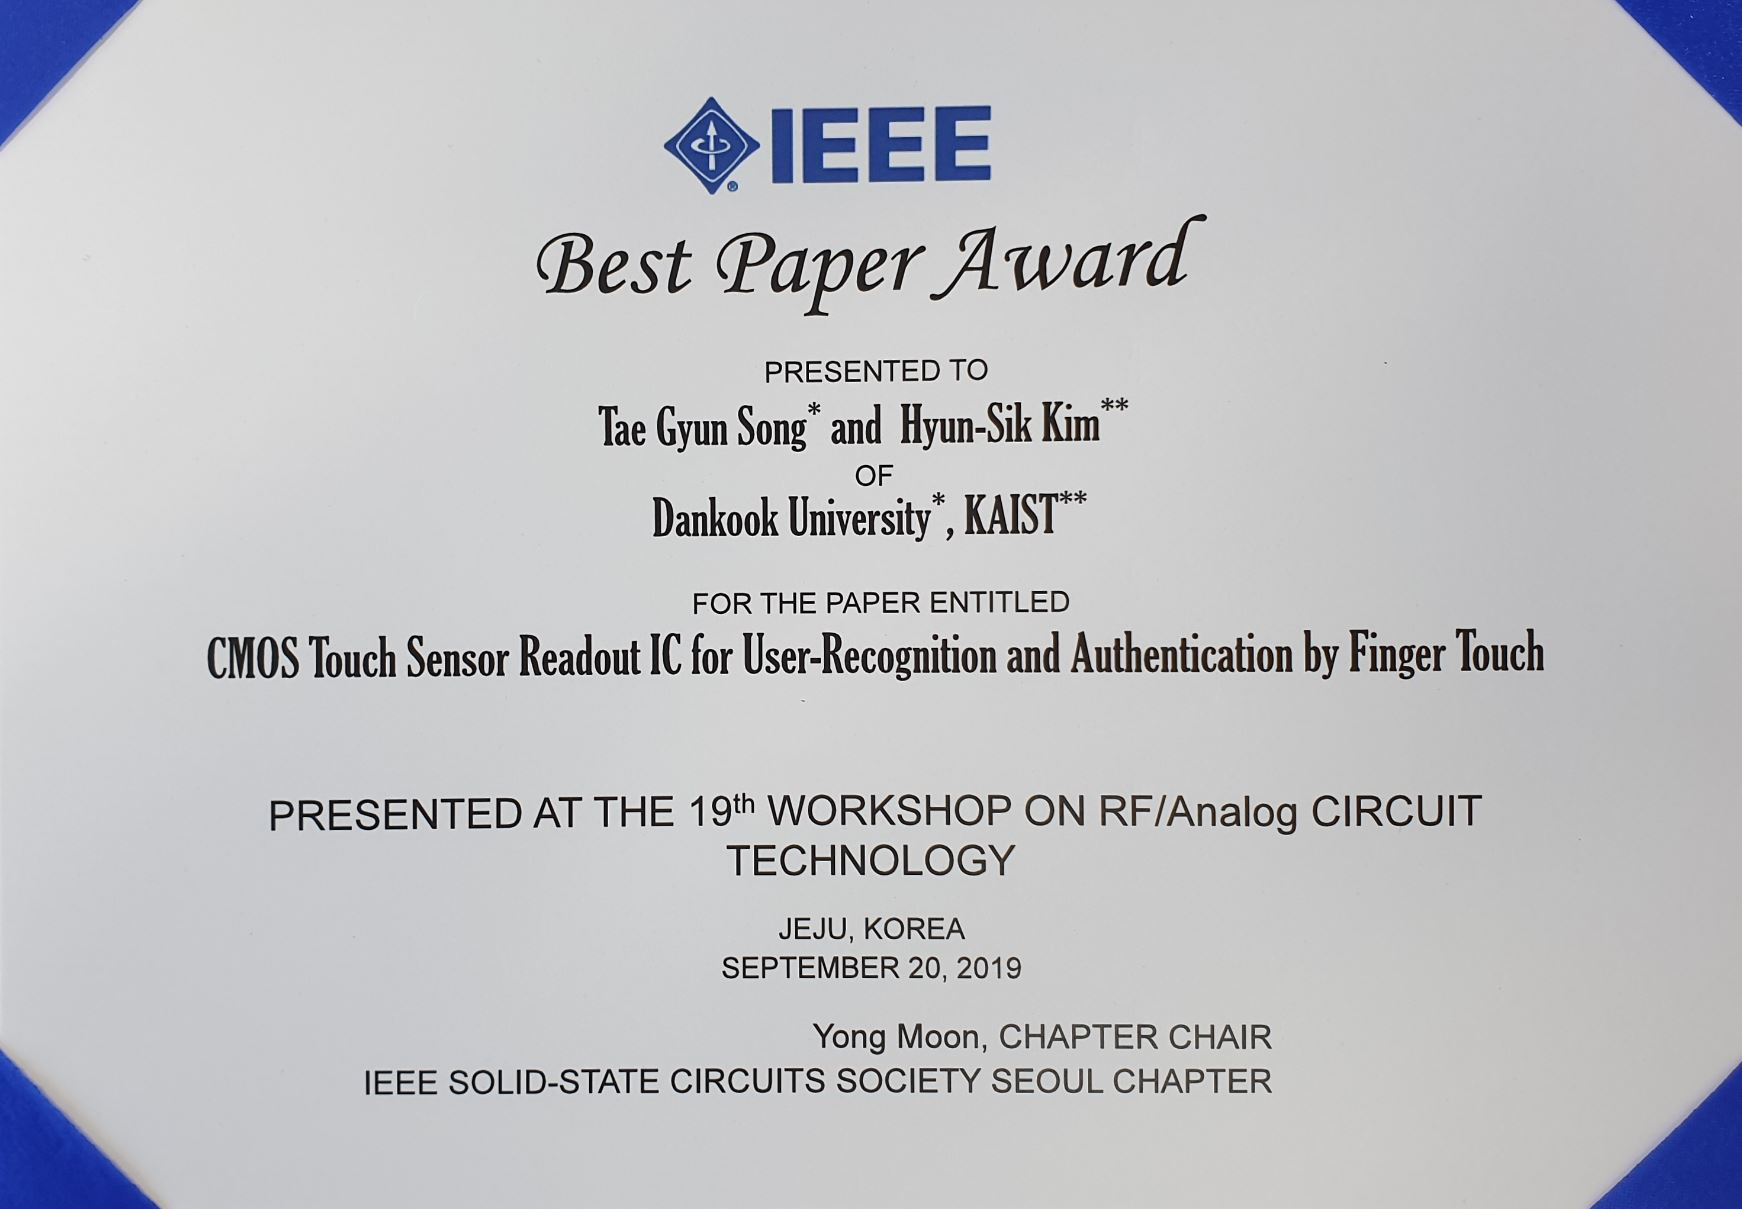 Best Paper Award (Tae-Gyun Song)